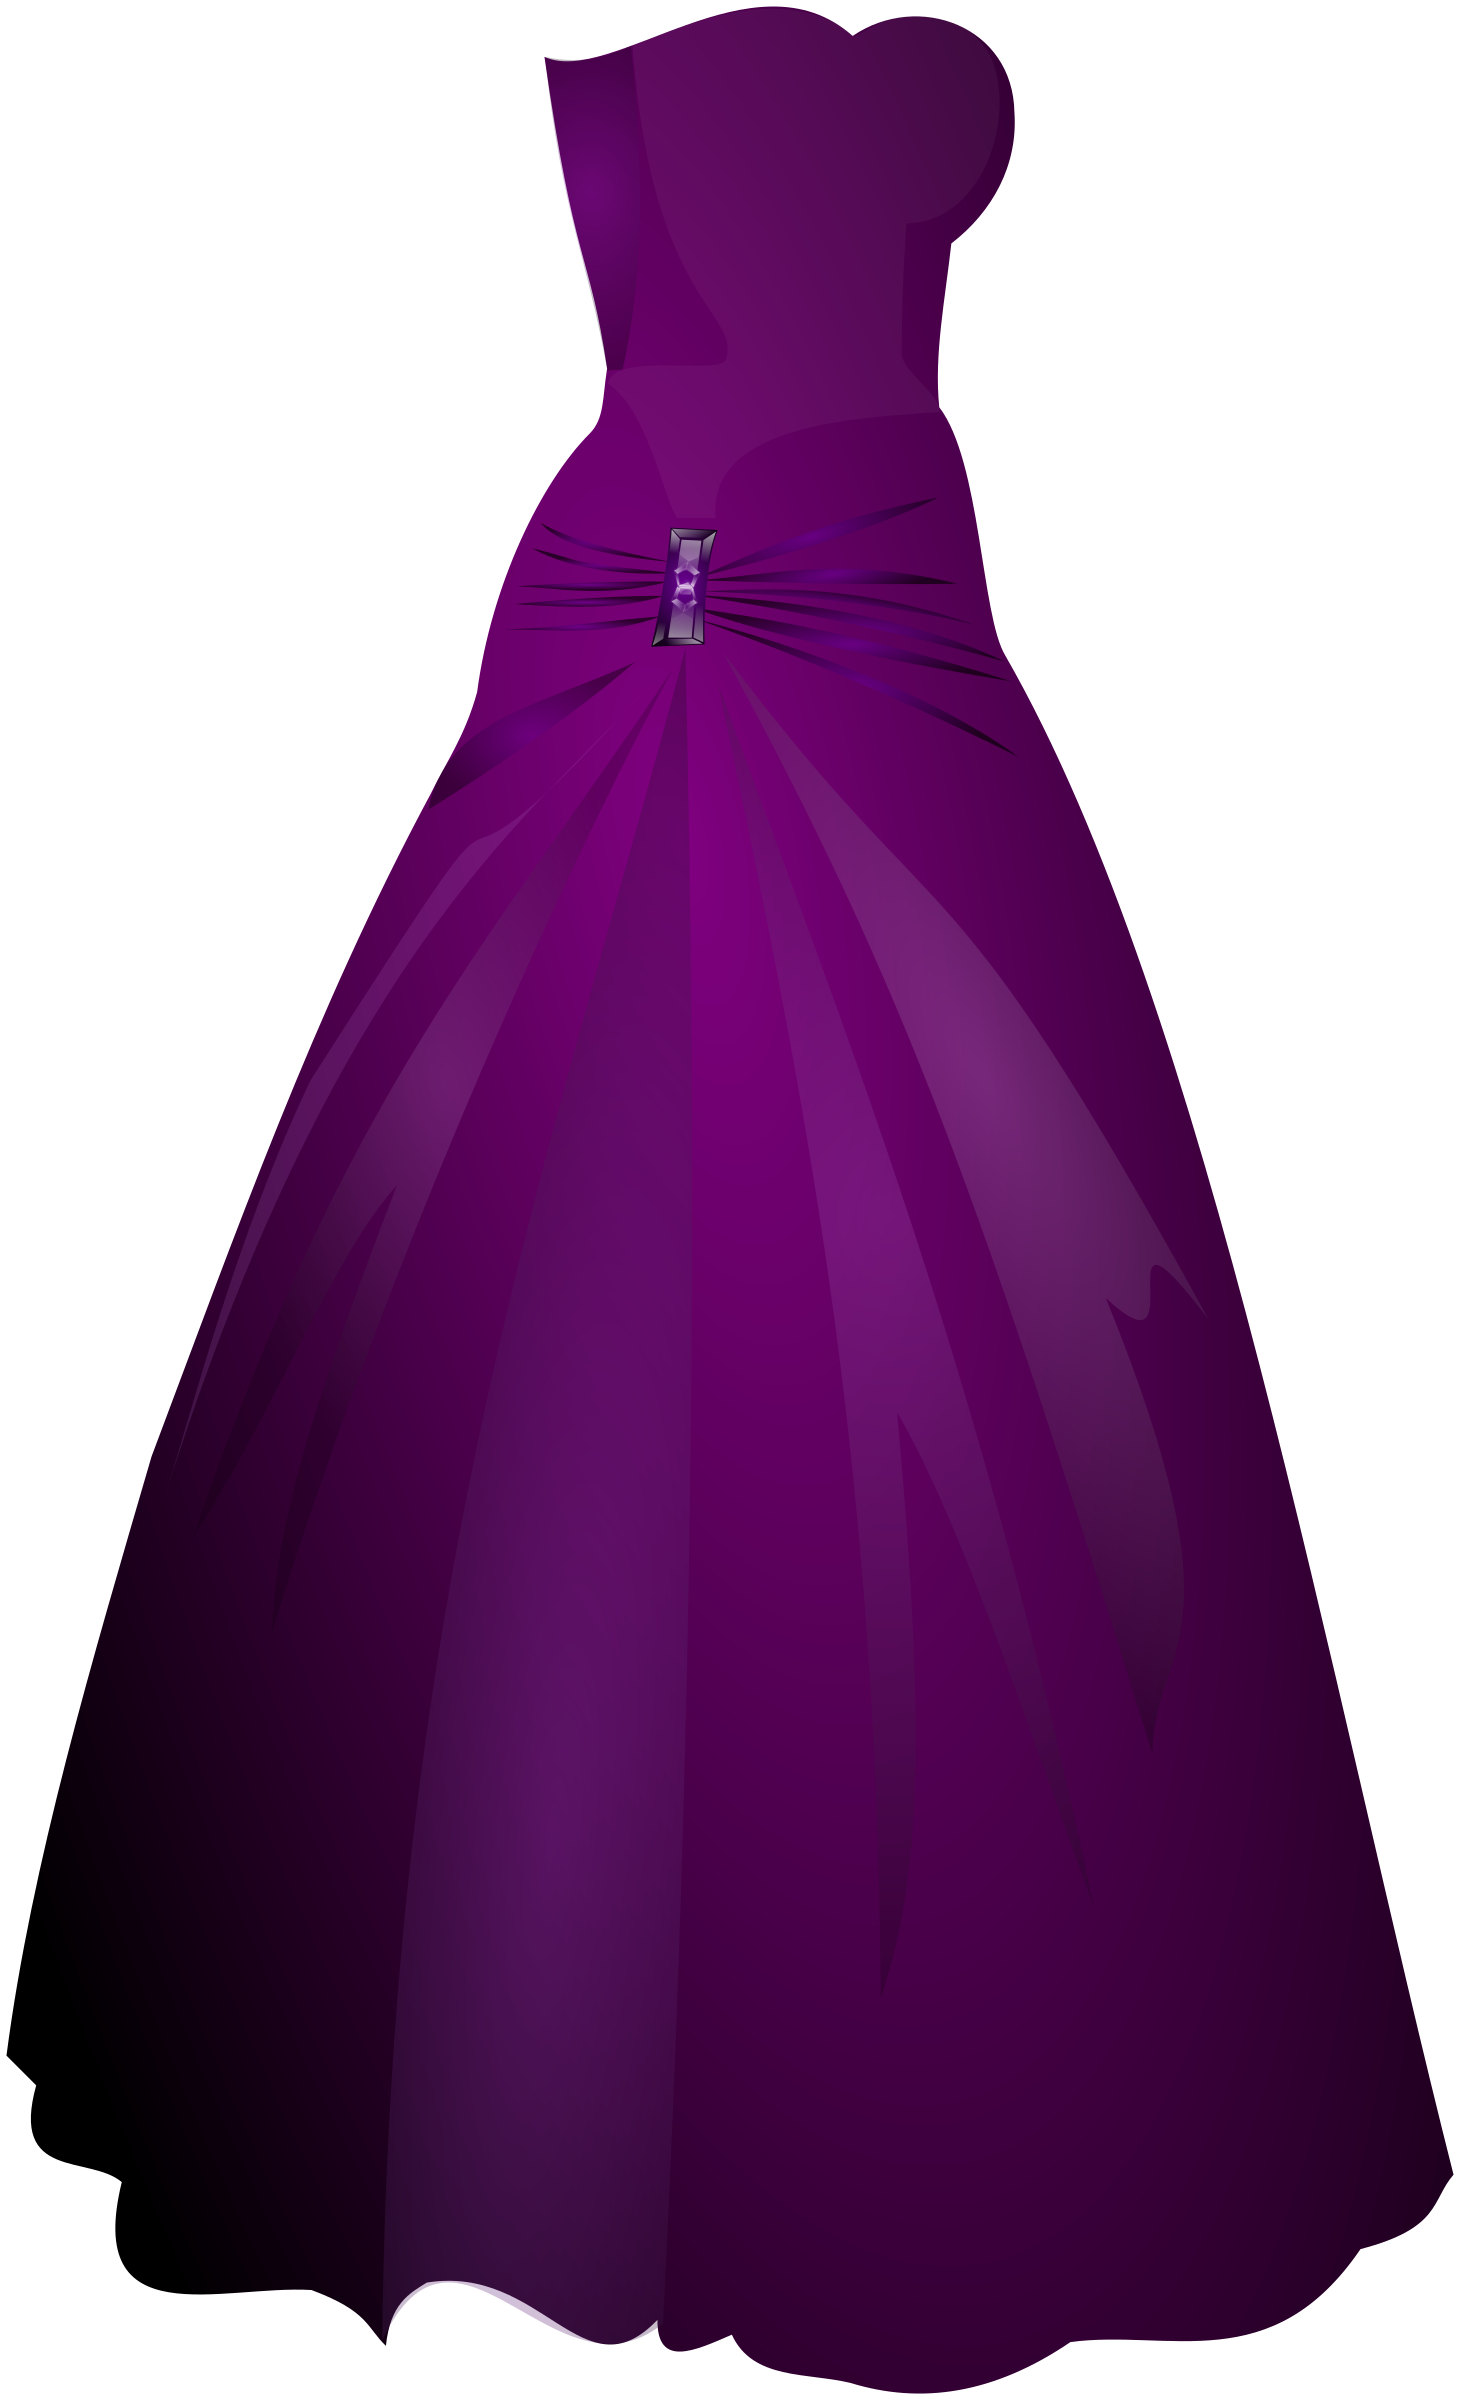 Gown clipart formal dress Clipart Remix Gown Formal Formal